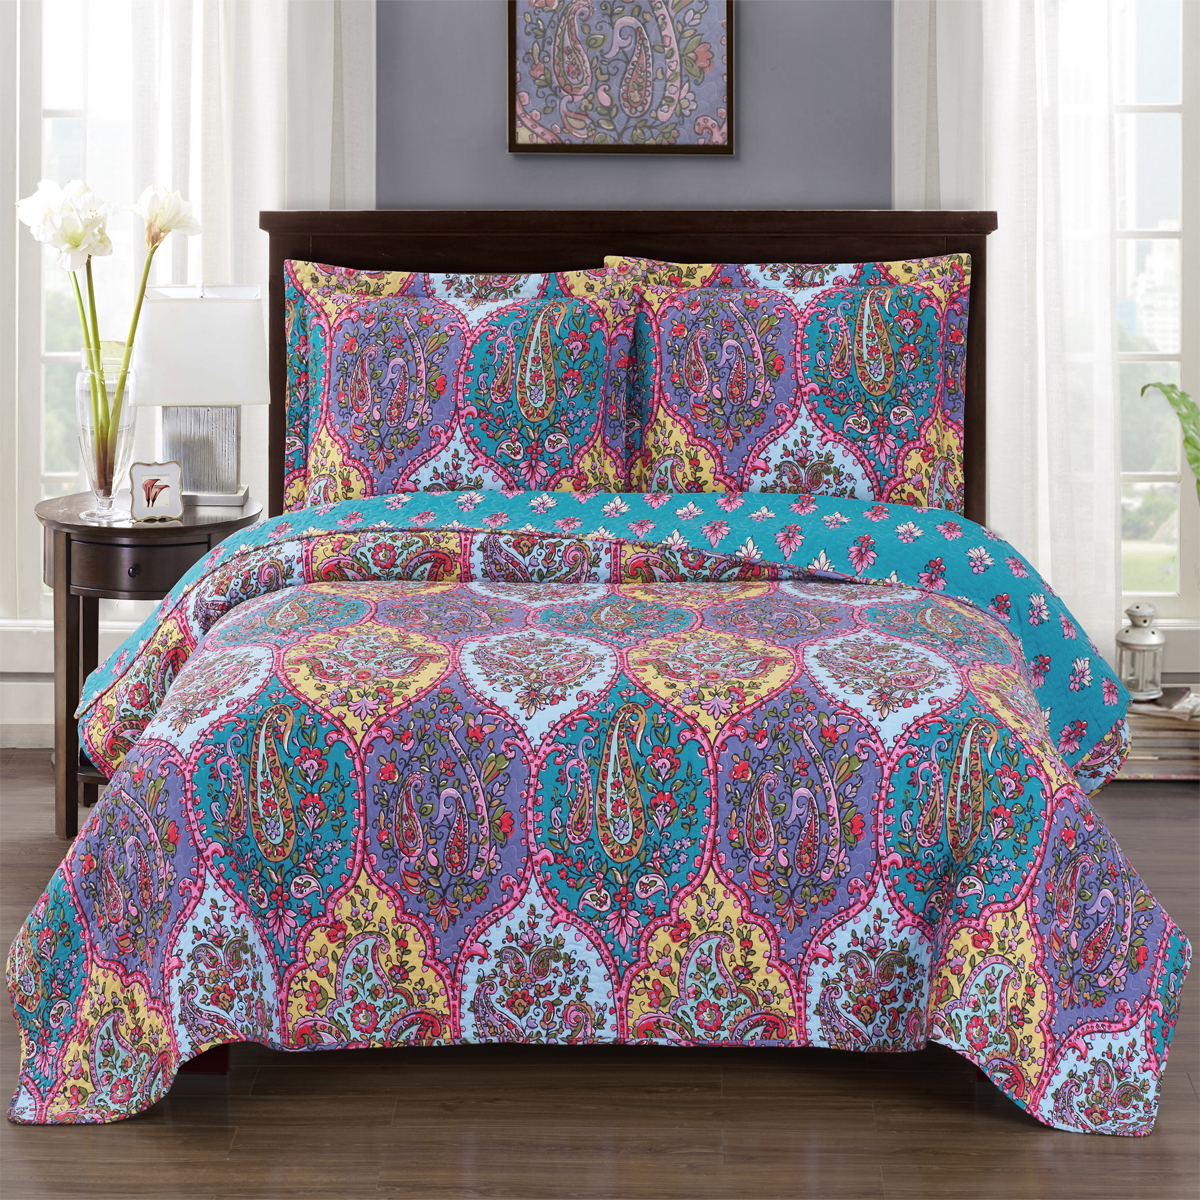 Viola Floral Oversize Coverlet Wrinkle-Free & Easy Care Reversible Quilt Set by Royal Plaza Textiles, Inc.